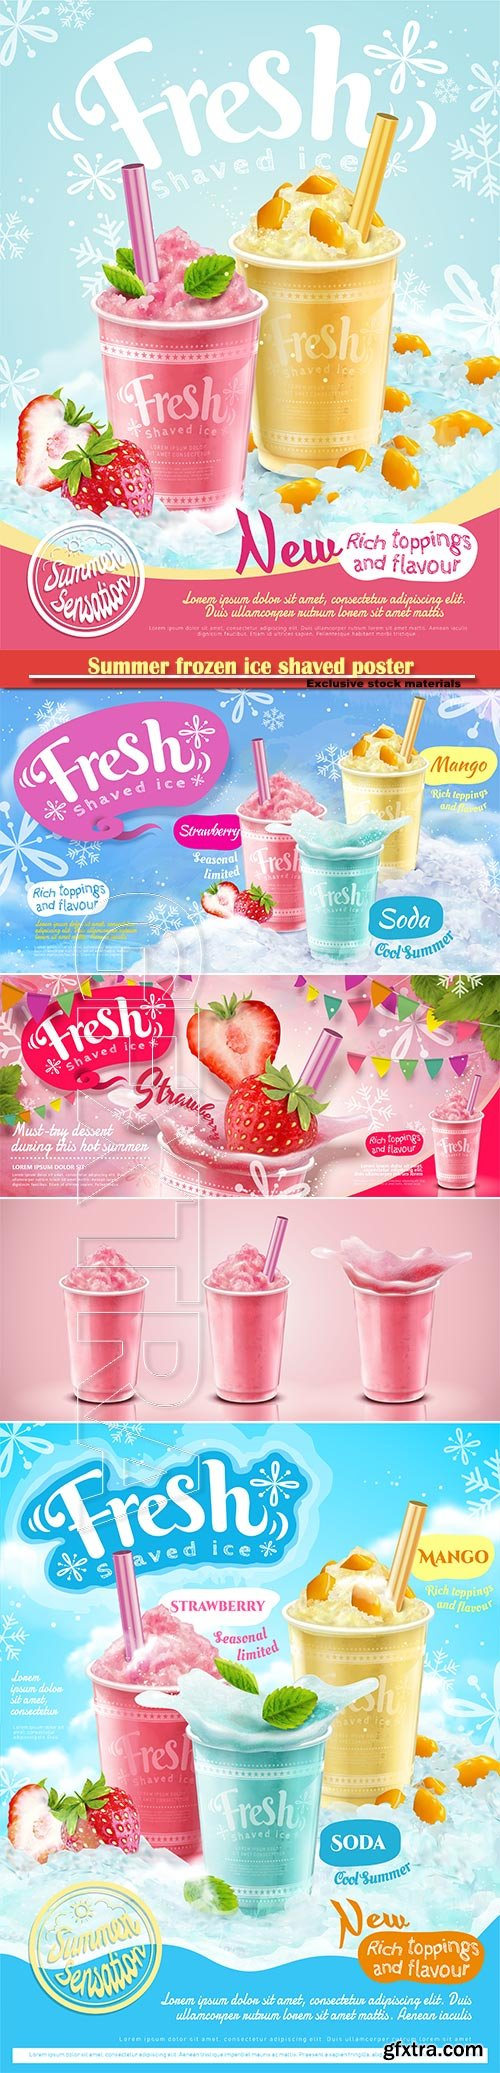 Summer frozen ice shaved poster with refreshing fruit and toppings in 3d illustration